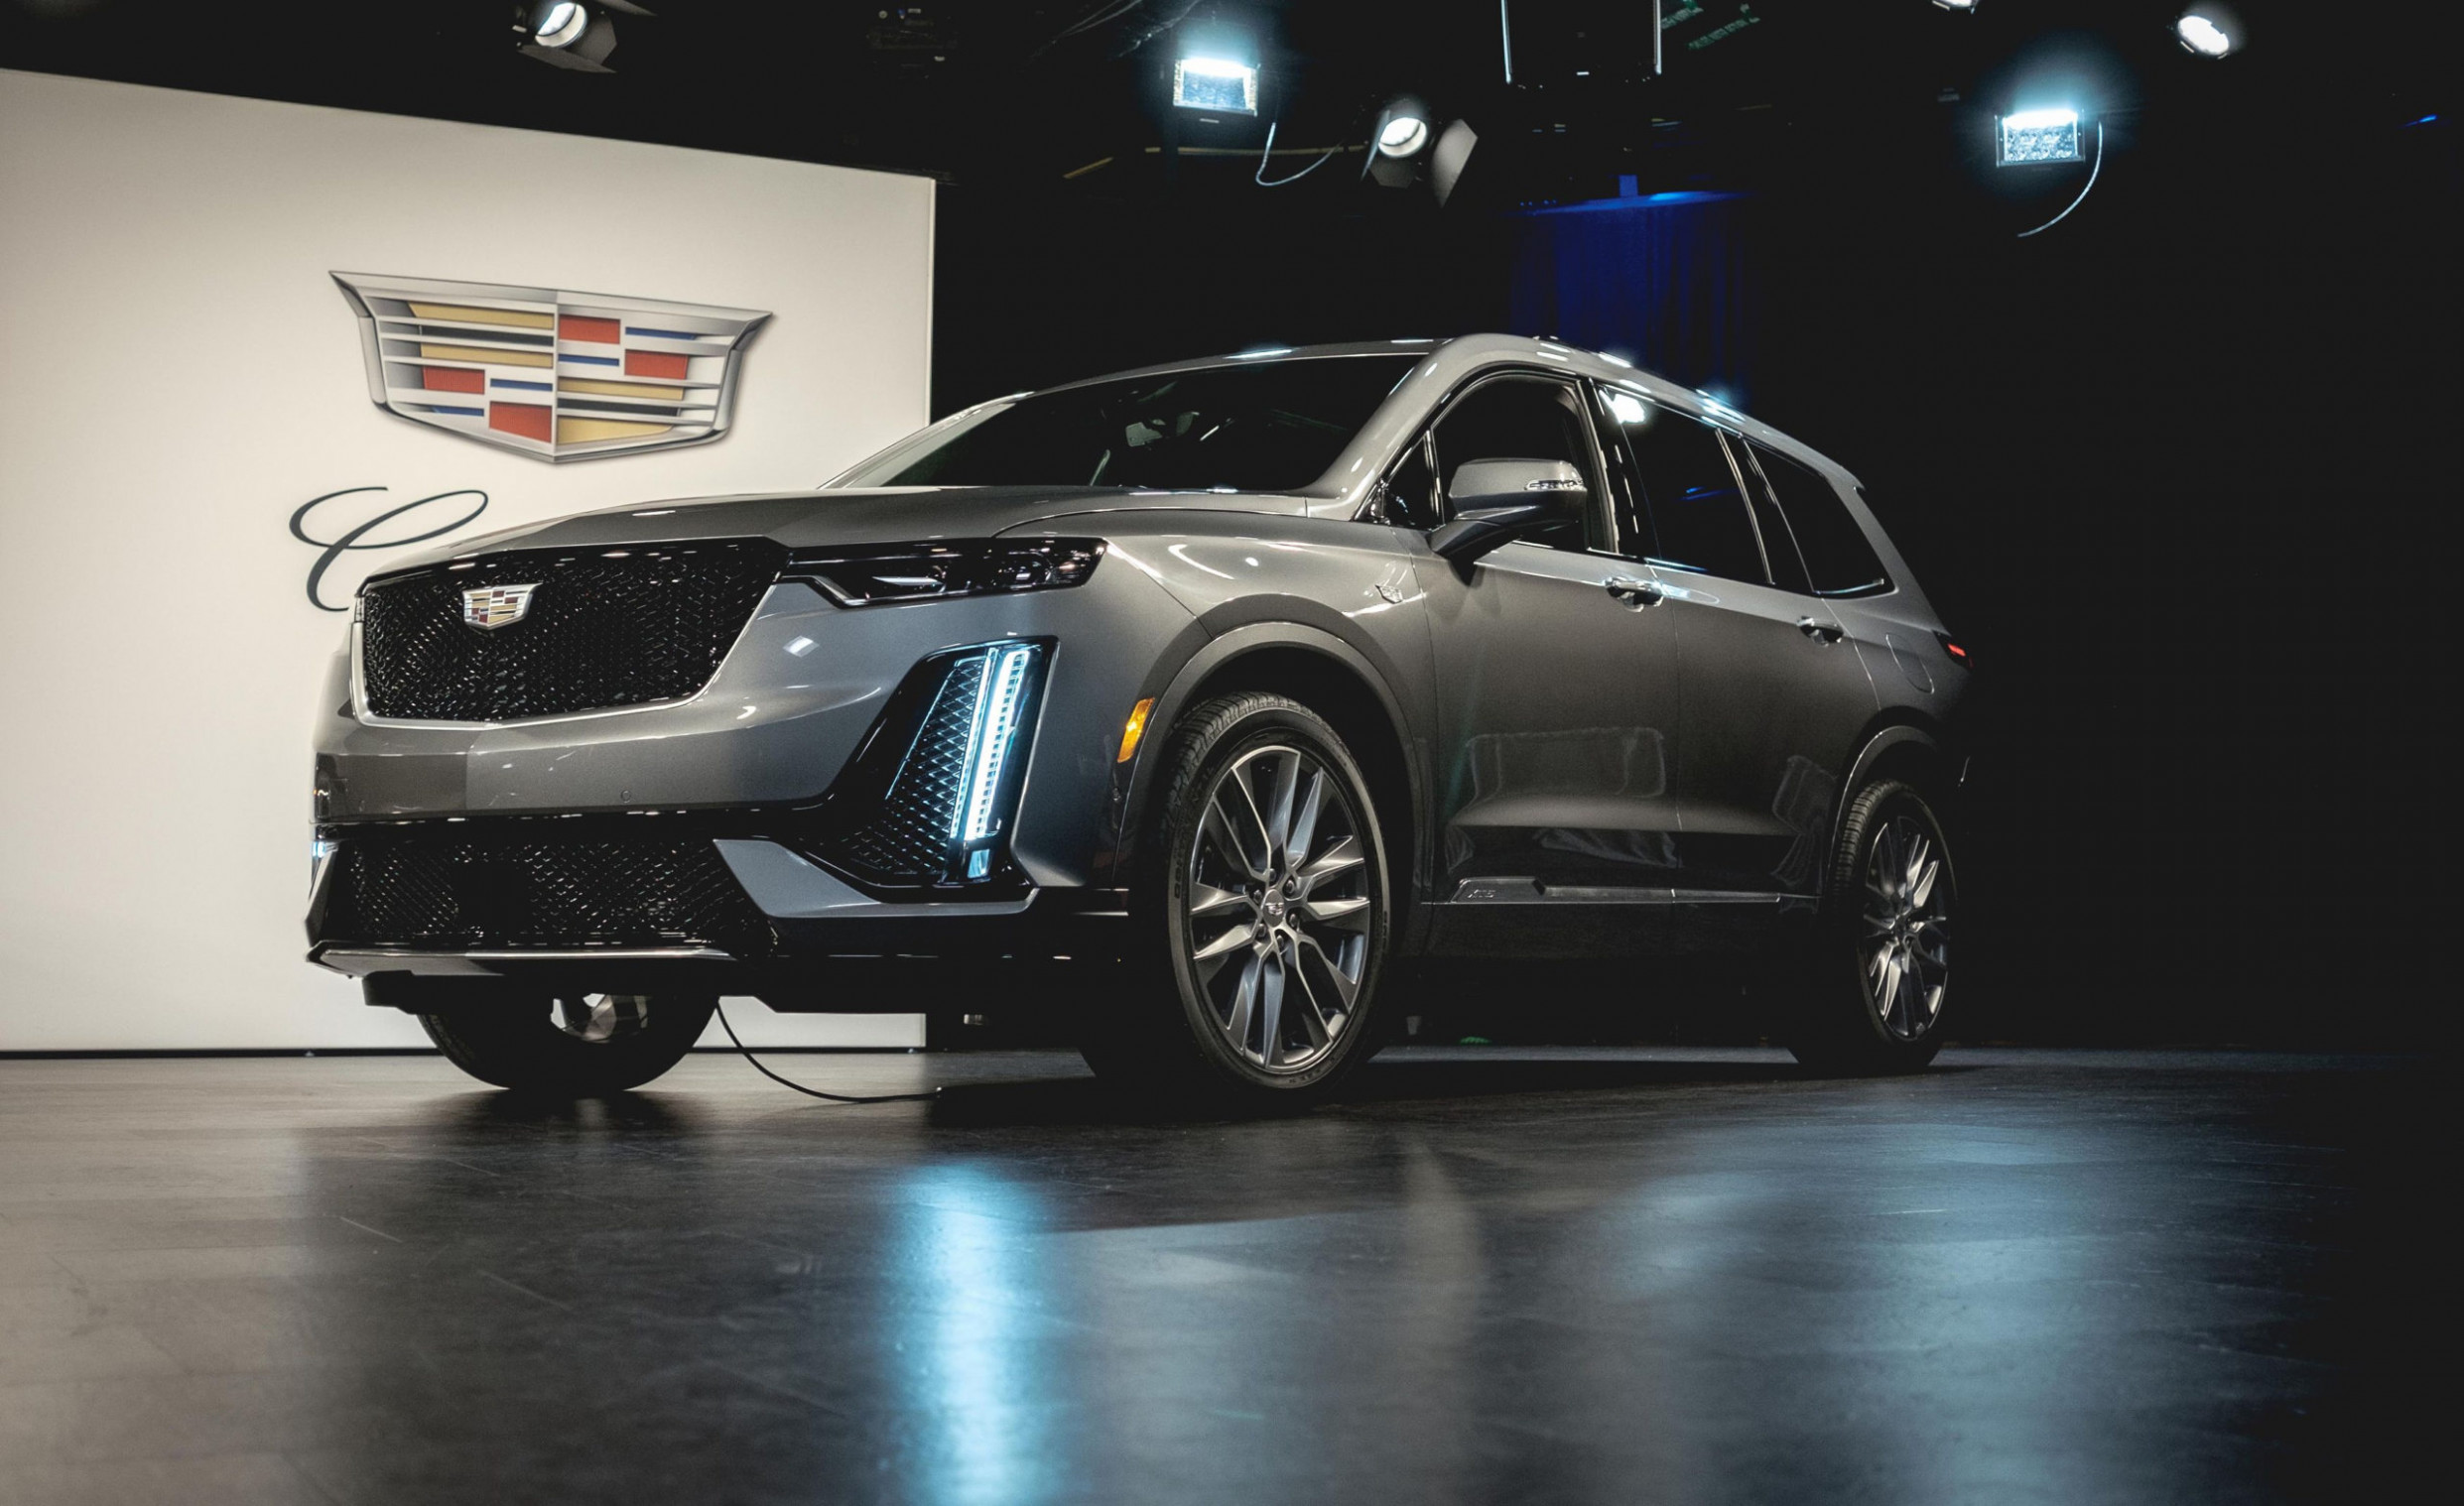 Configurations 2022 Cadillac Xt6 Release Date